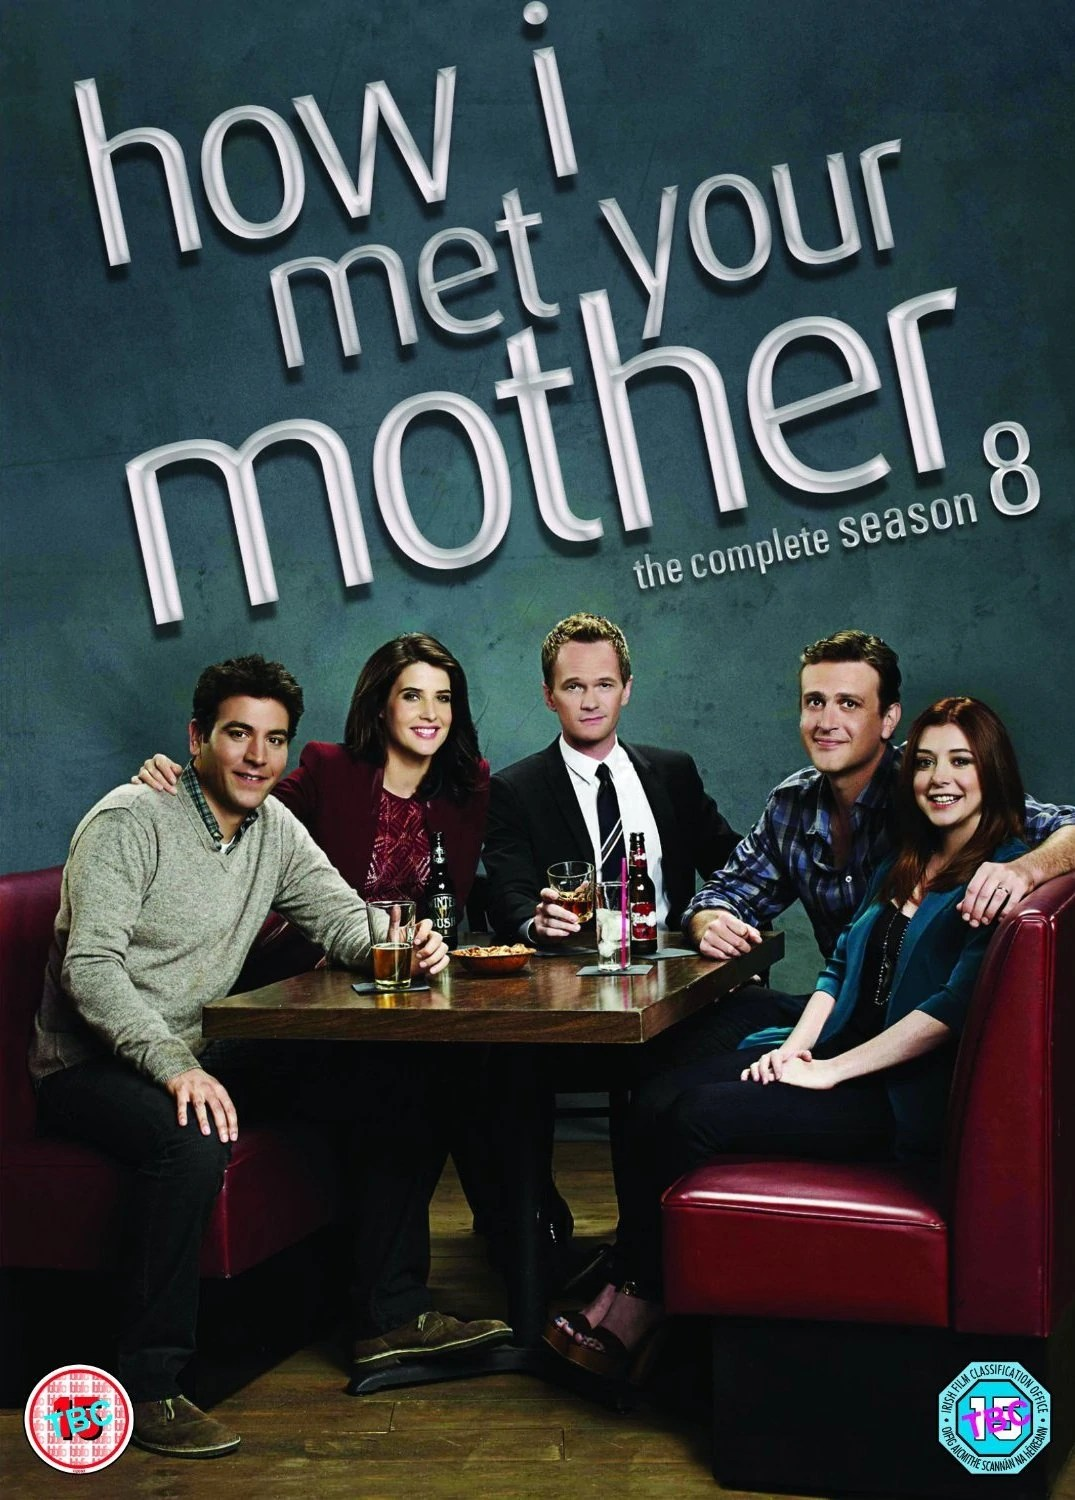 Barney Stinson Resume Season 8 How I Met Your Mother Wiki Fandom Powered By Wikia